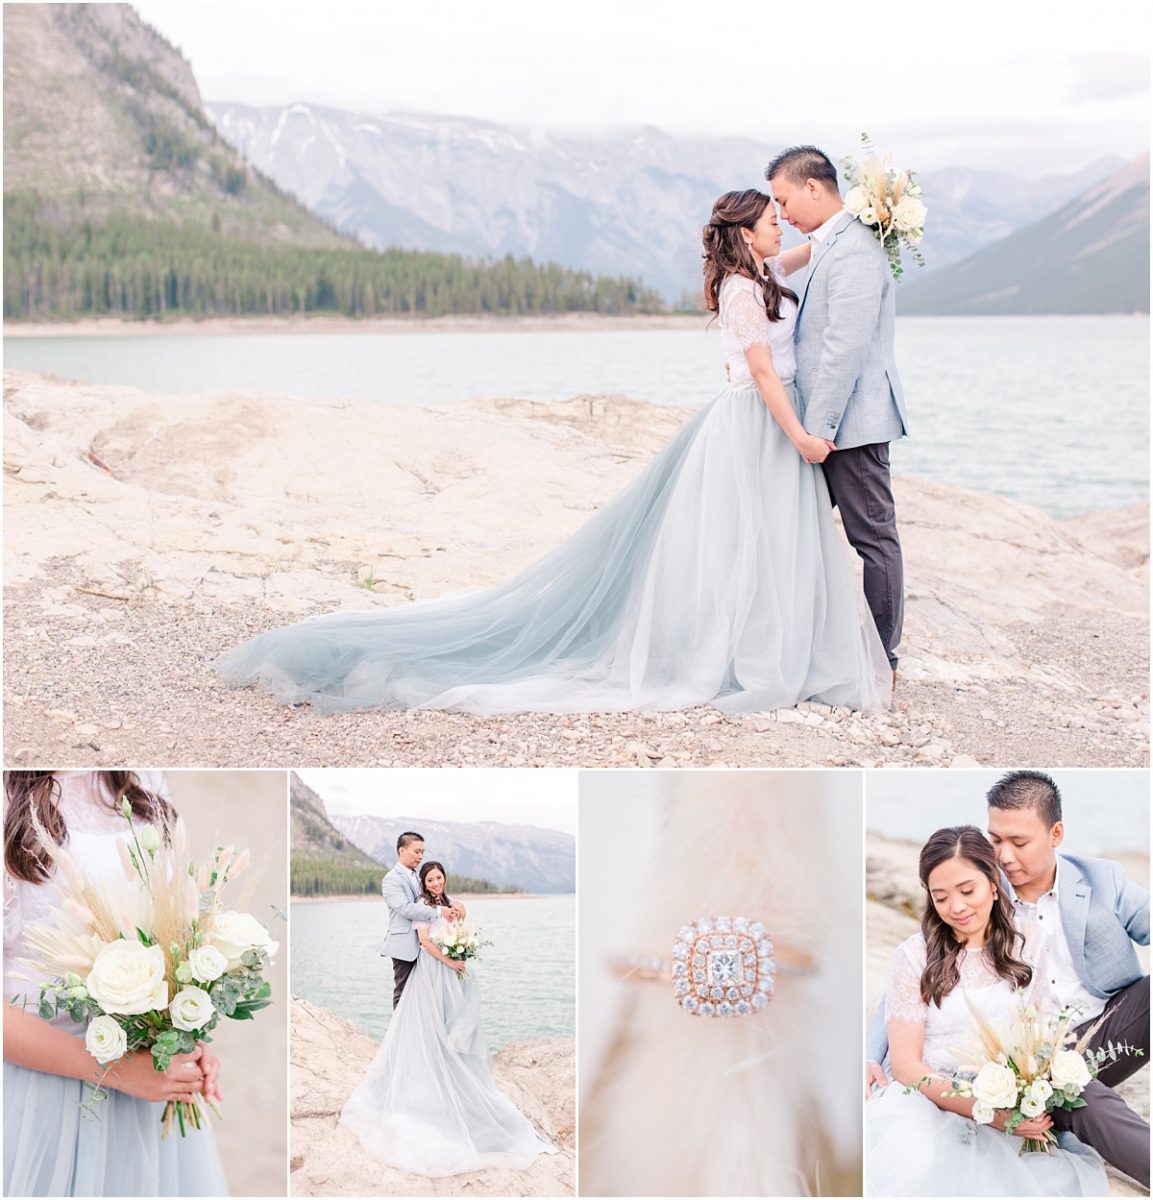 photos with jim and jerrica in banff jasper national park in canada with their wedding and engagement photographer lots of light creams and dusty blue colors at lake minnewanka